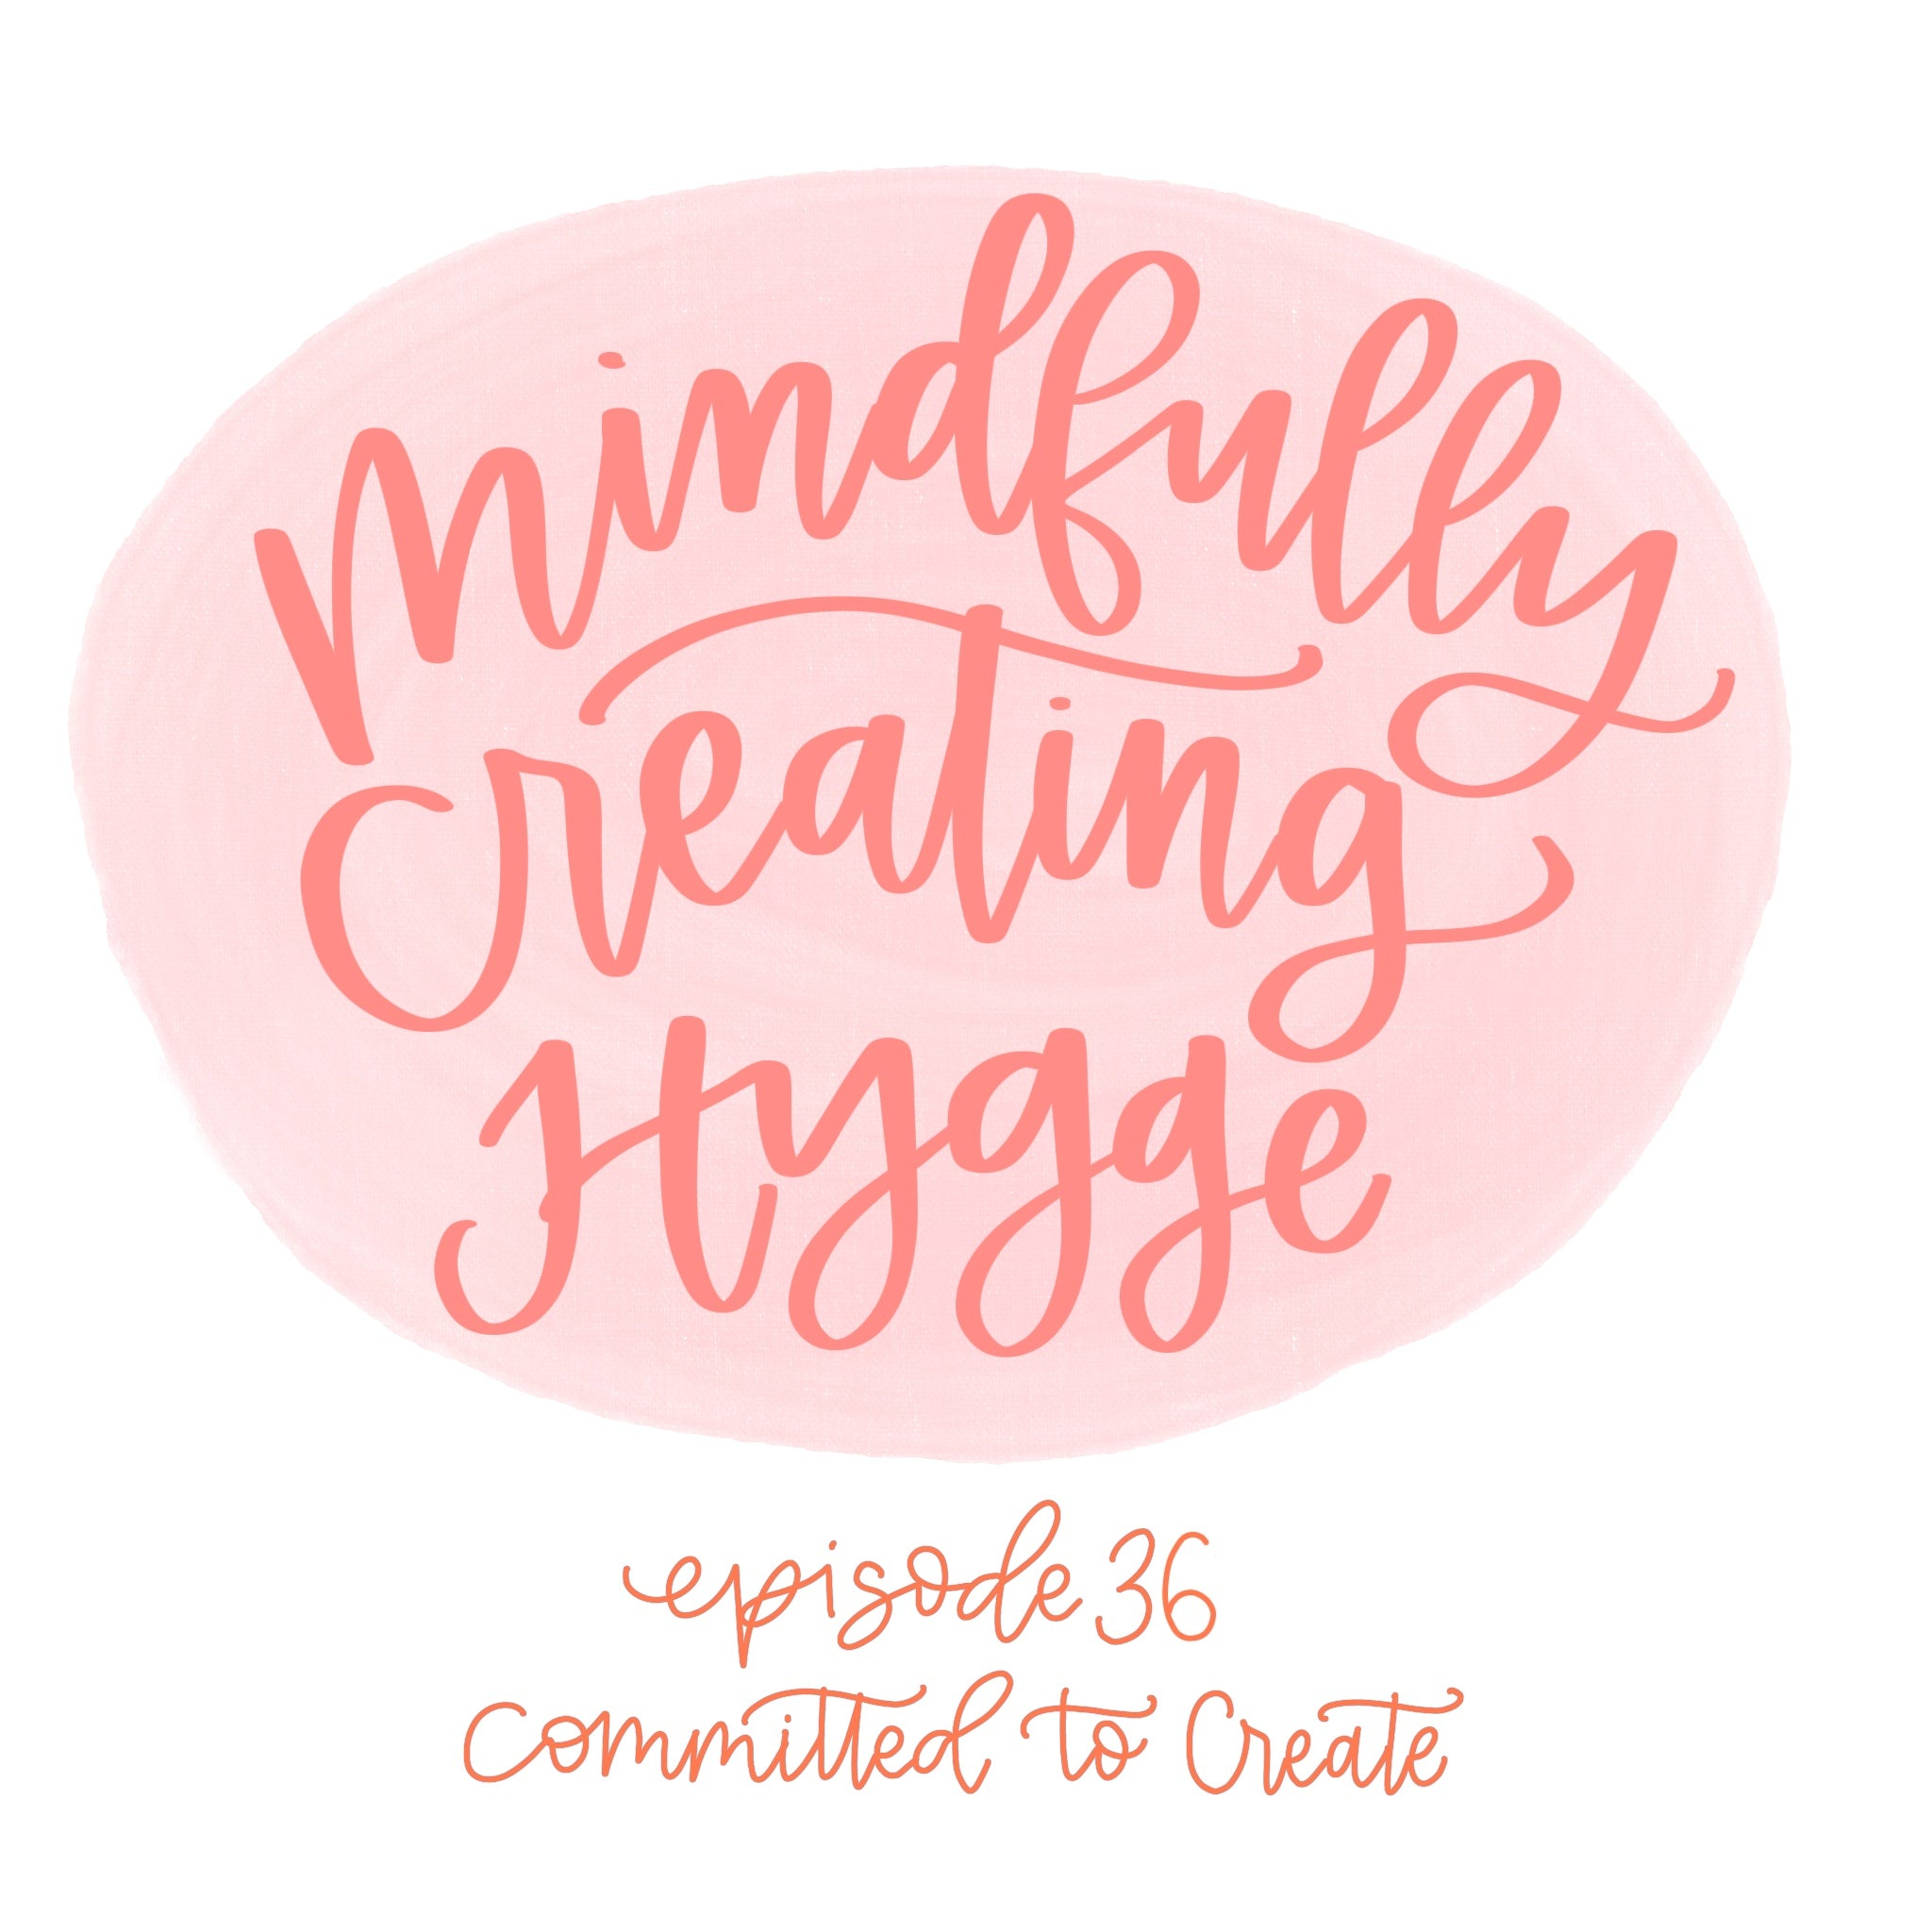 036: Mindfully Creating Hygge